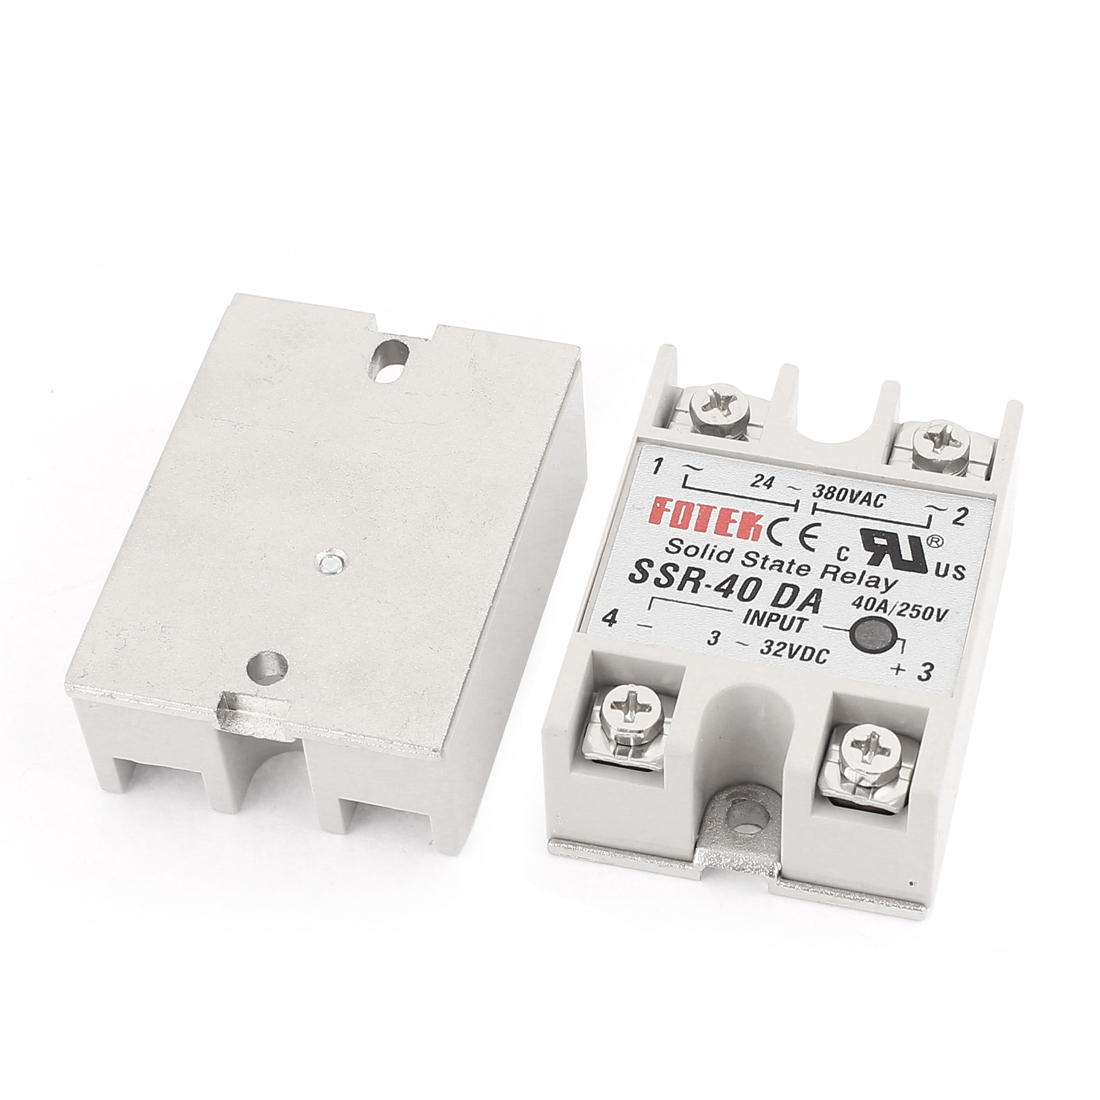 SSR-40DA DC 3-32V 40A Input Single Phase Solid State Relay 2Pcs